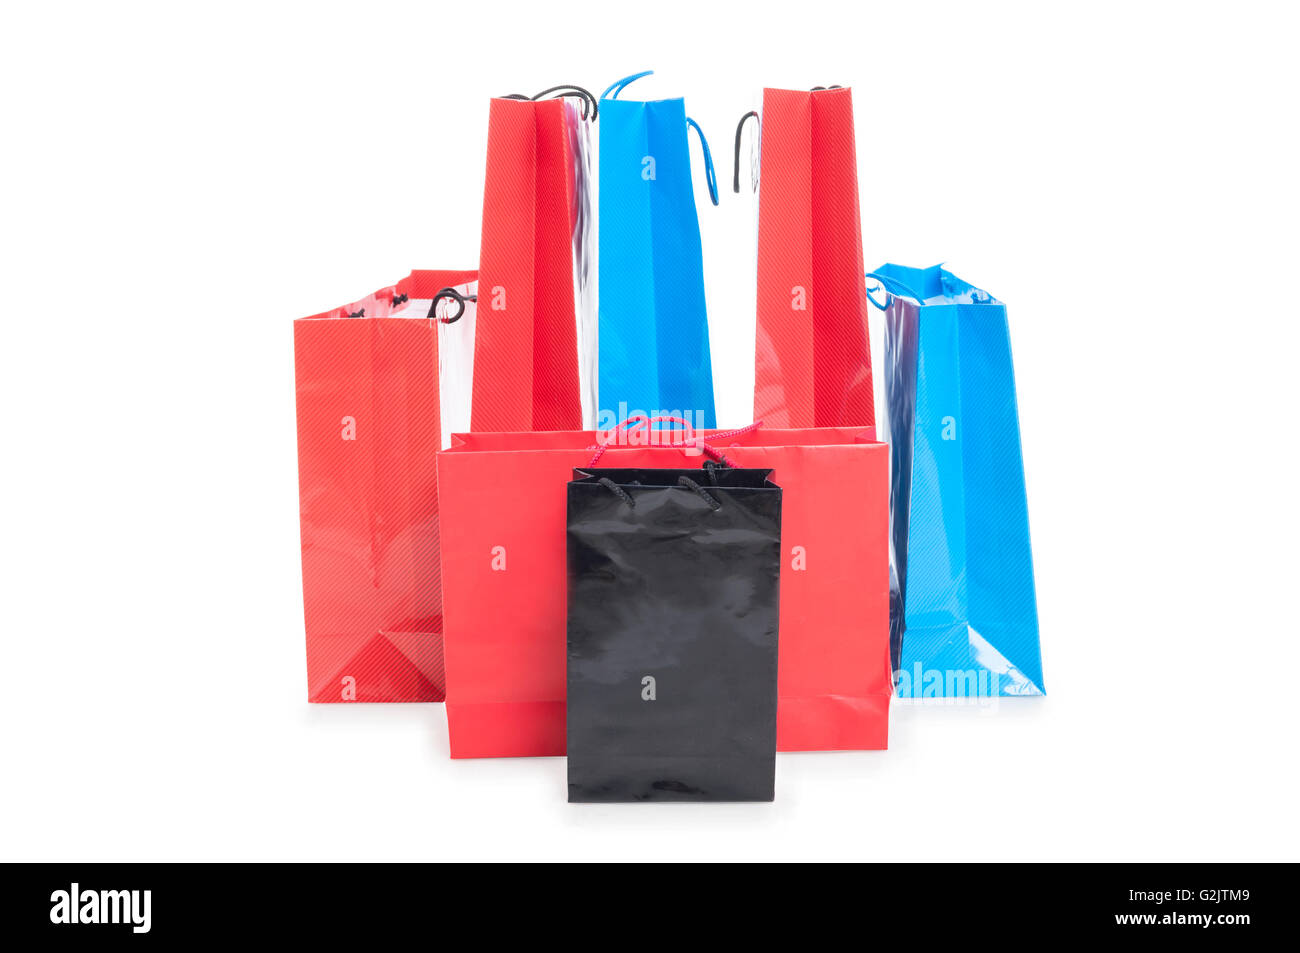 Assorted colored shopping bags included red, blue and black on a white background with copyspace - Stock Image